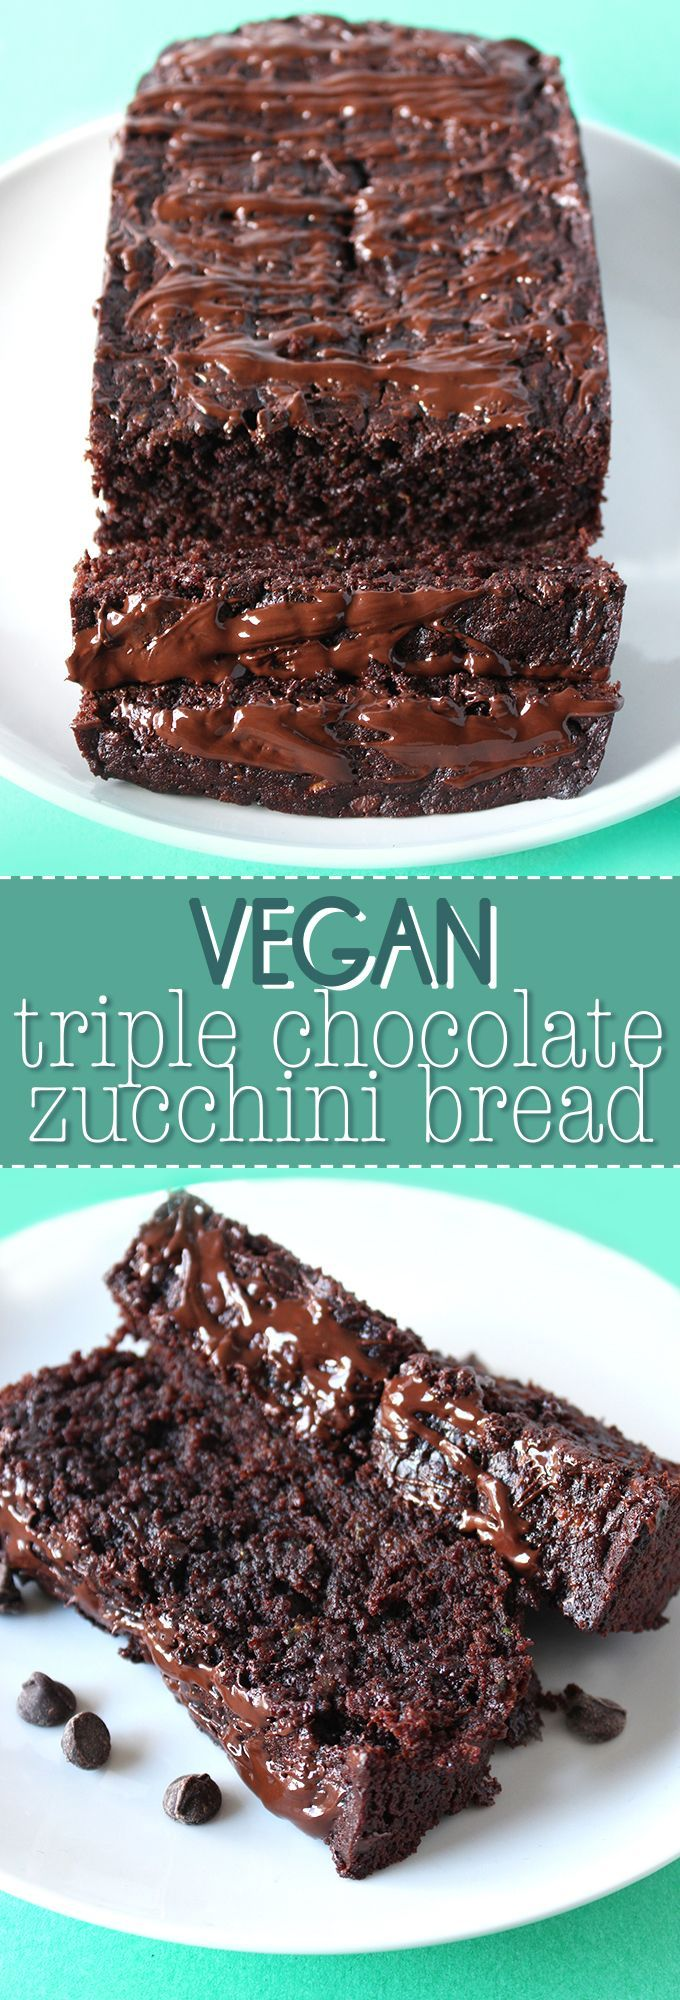 This is the chocolate lovers ultimate dream! This VEGAN triple chocolate  zucchini bread is ultra